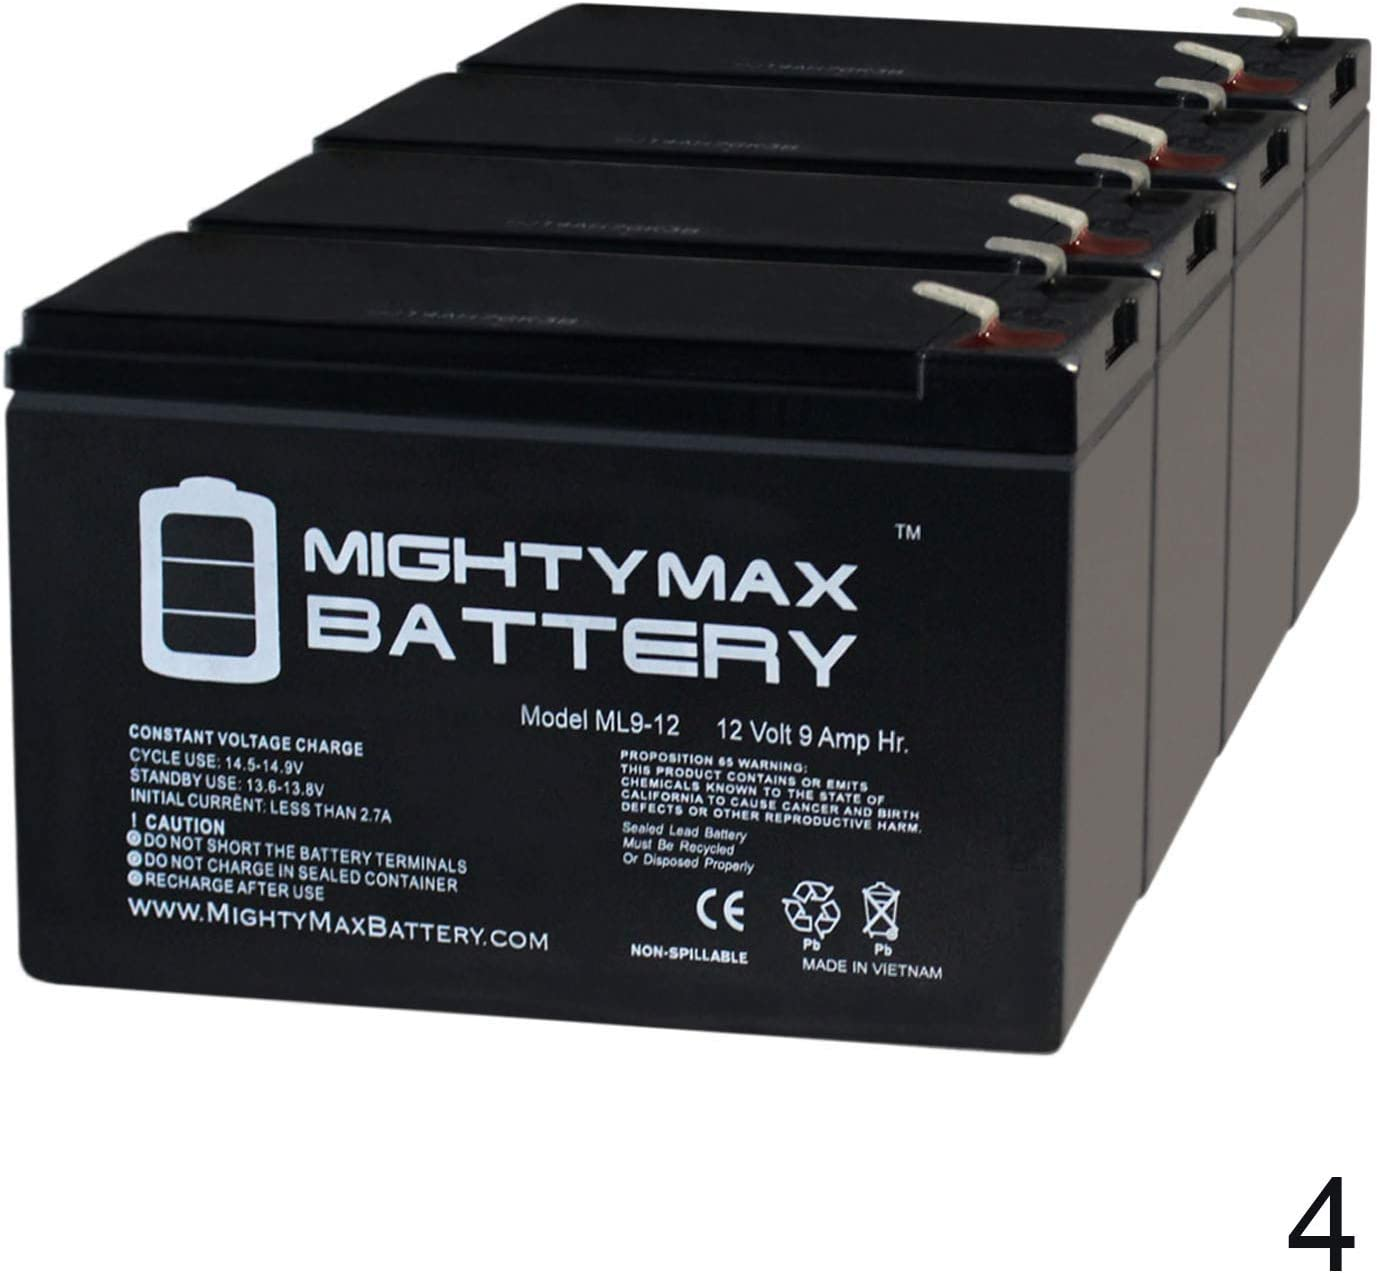 Mighty Max Battery ML9-12 4 Pack Brand Product 12V 9AH Computer Back Up Power Battery